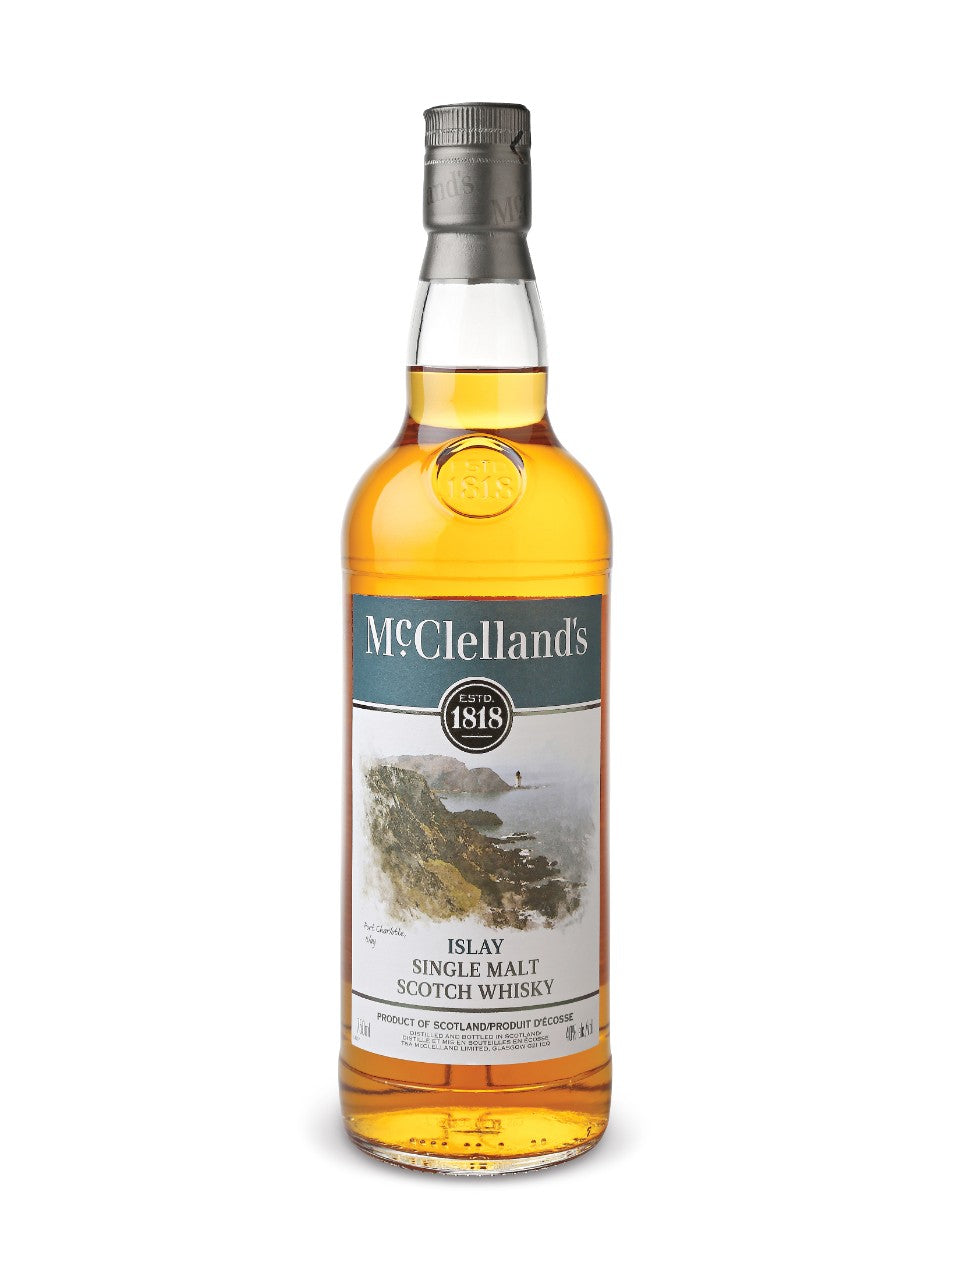 MçClellands Lowland Single Malt Scotch Whisky (750ml Bottle)